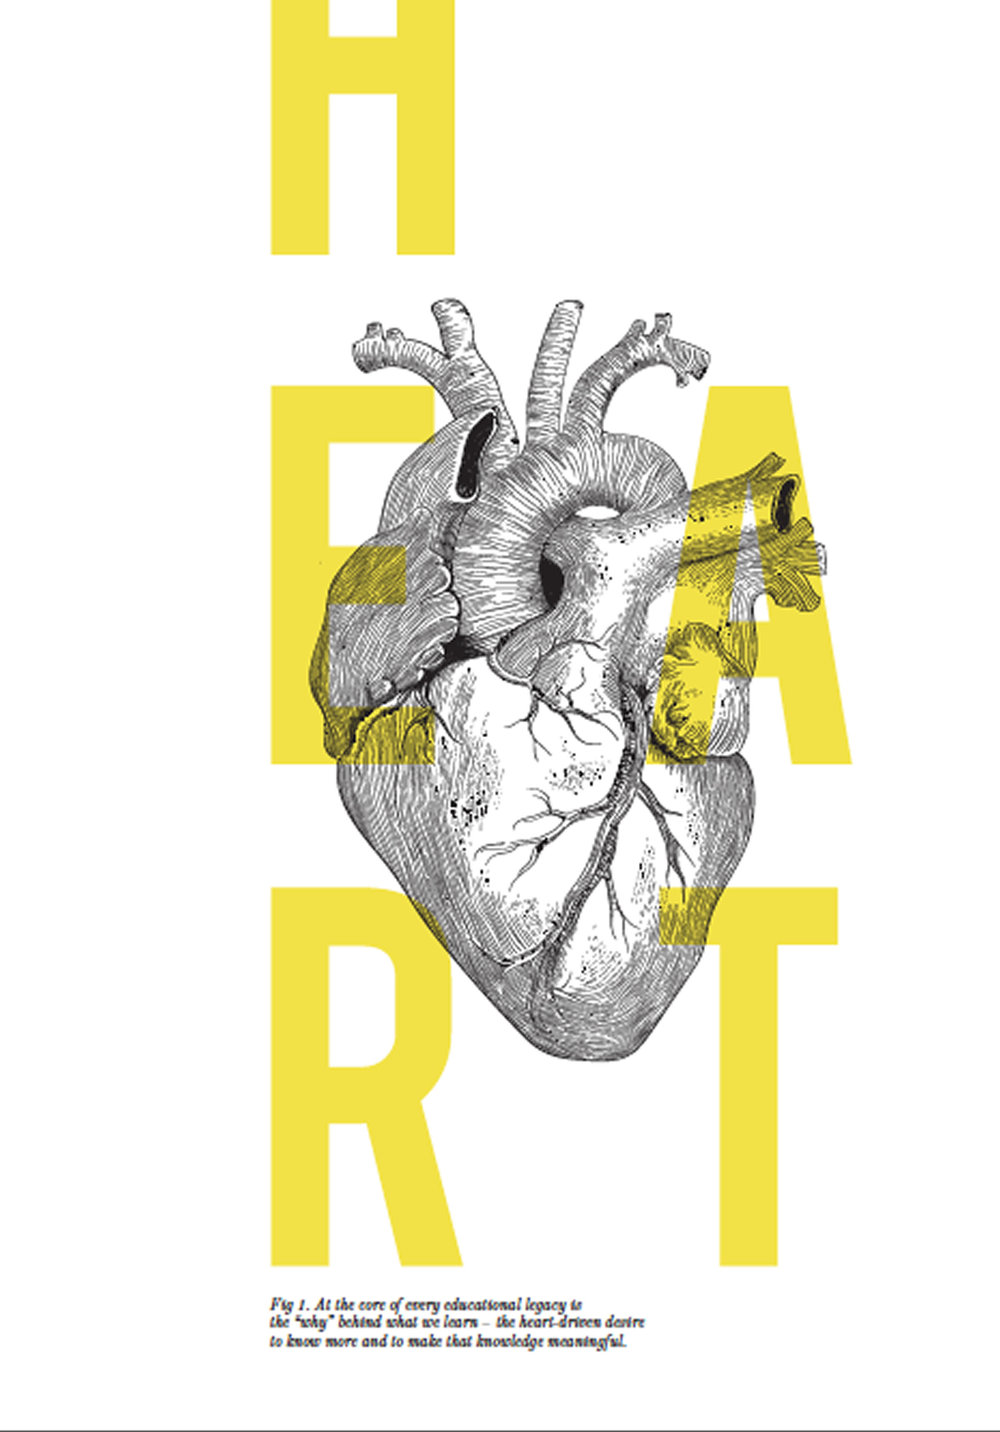 Our magazine has heart. Literally.